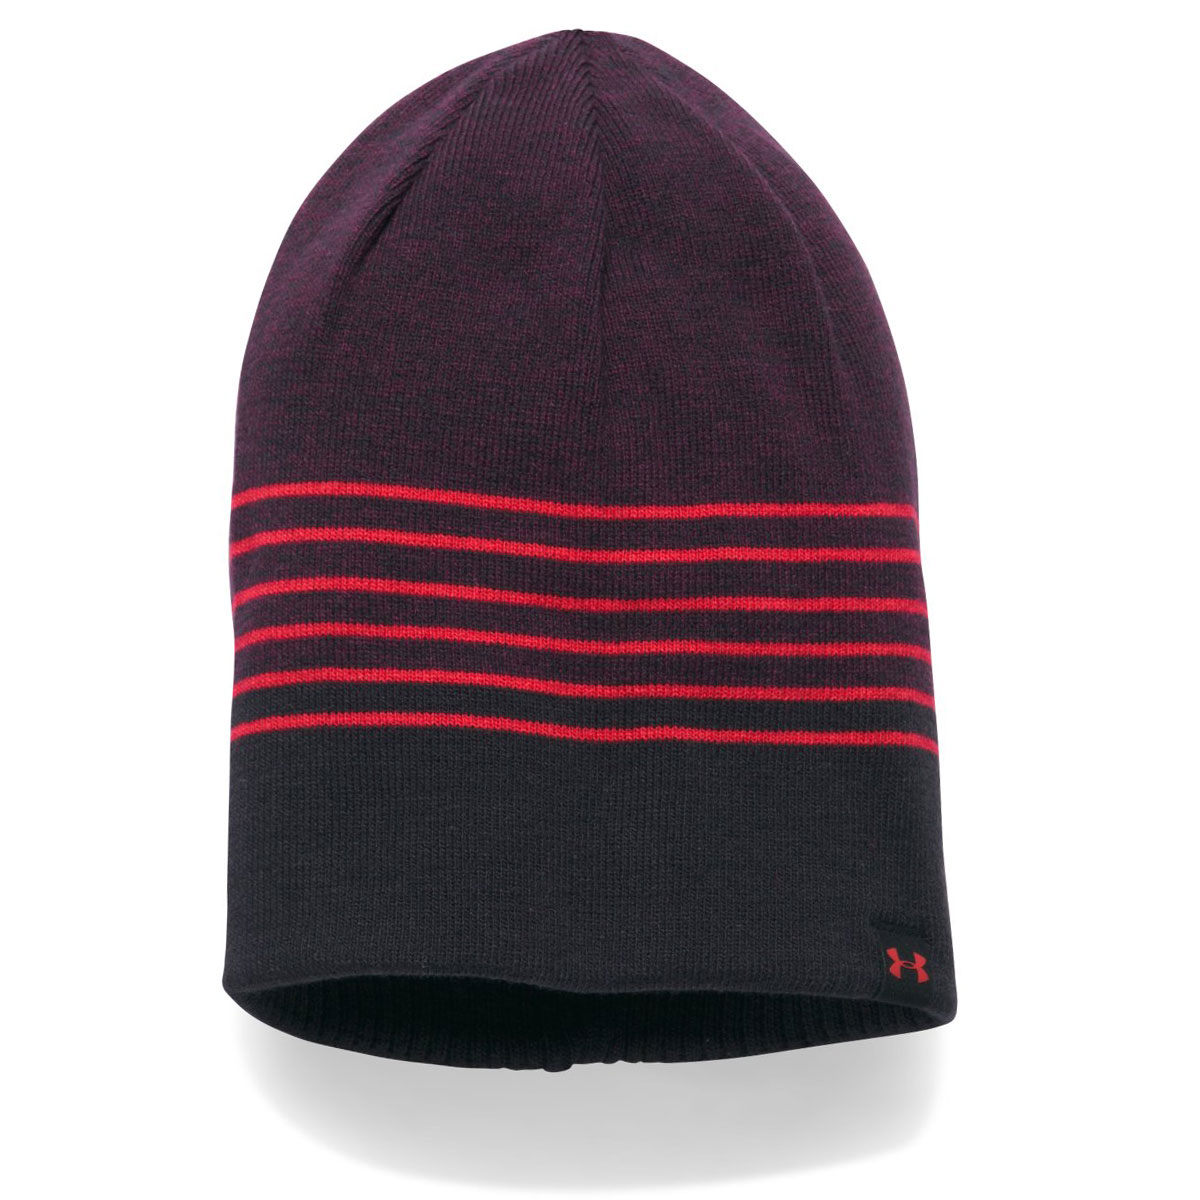 81e63f67ef2247 ... 2017 ColdGear 4 in 1 Reversible 2.0 Beanie Mens Winter Golf Hat Raisin  Red 1300077-916. About this product. Picture 1 of 5; Picture 2 of 5;  Picture 3 of ...